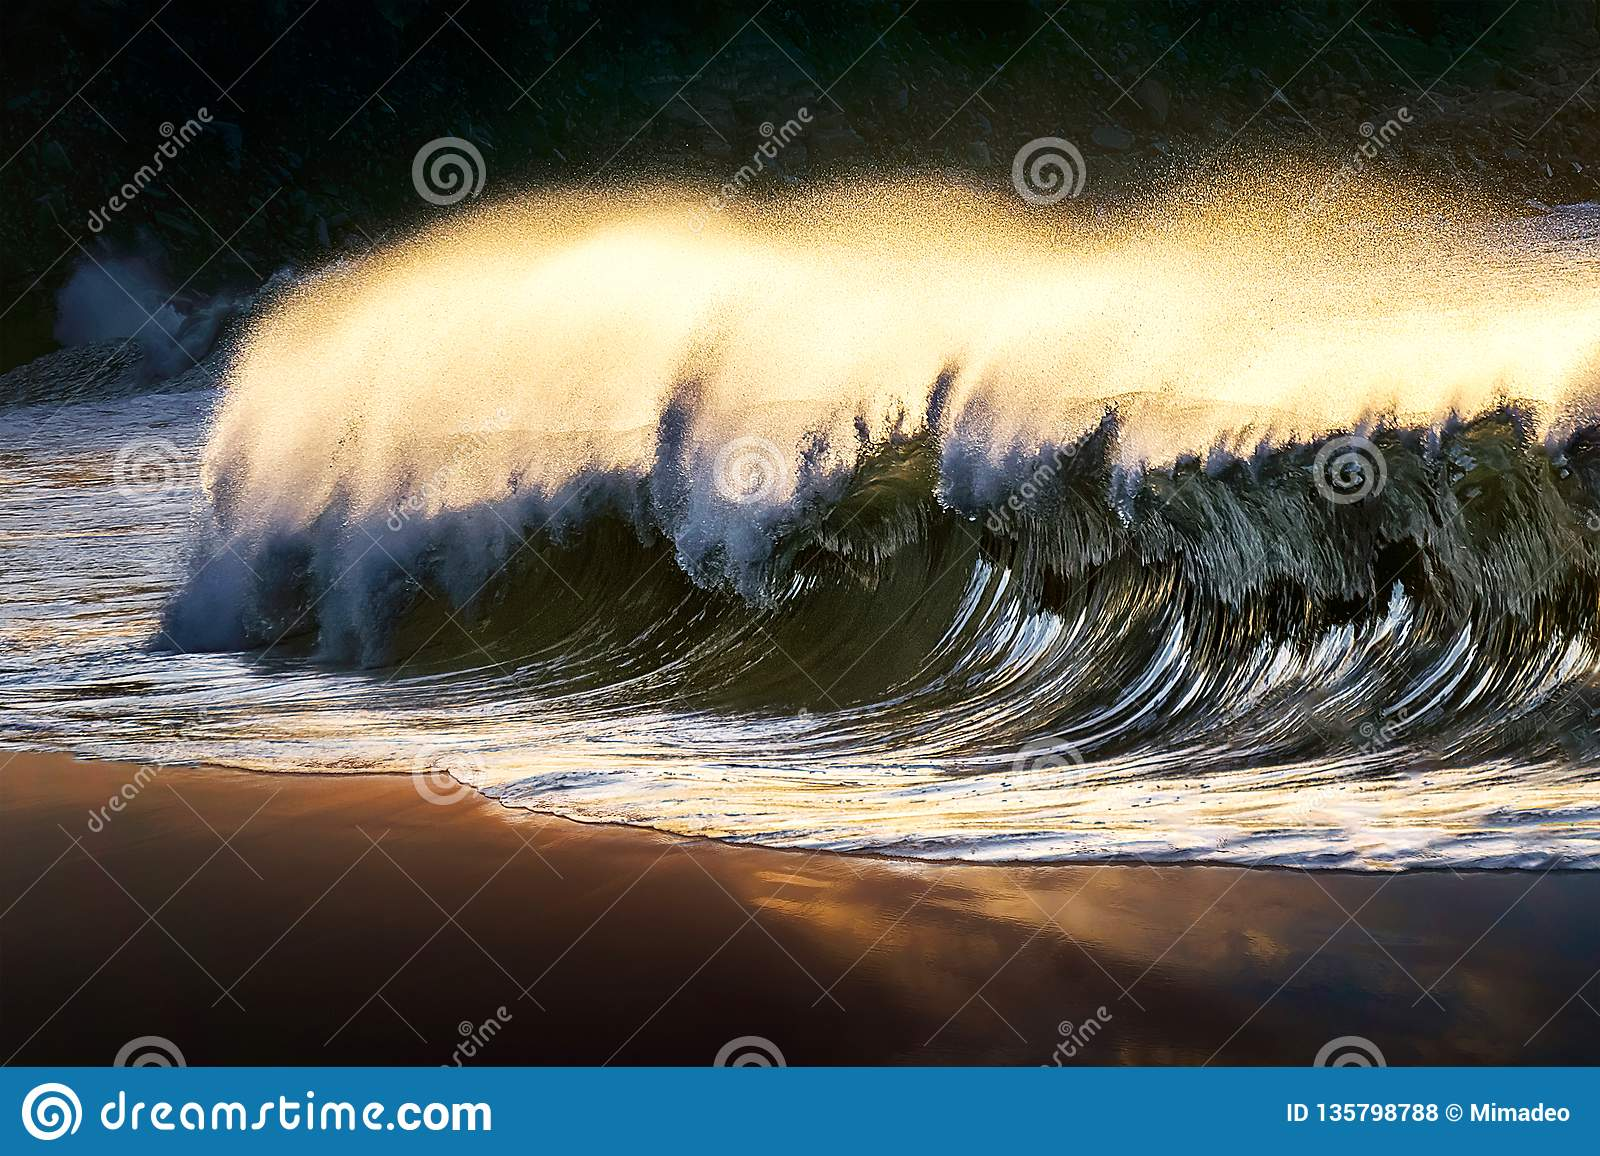 lonely wave breaking at beach